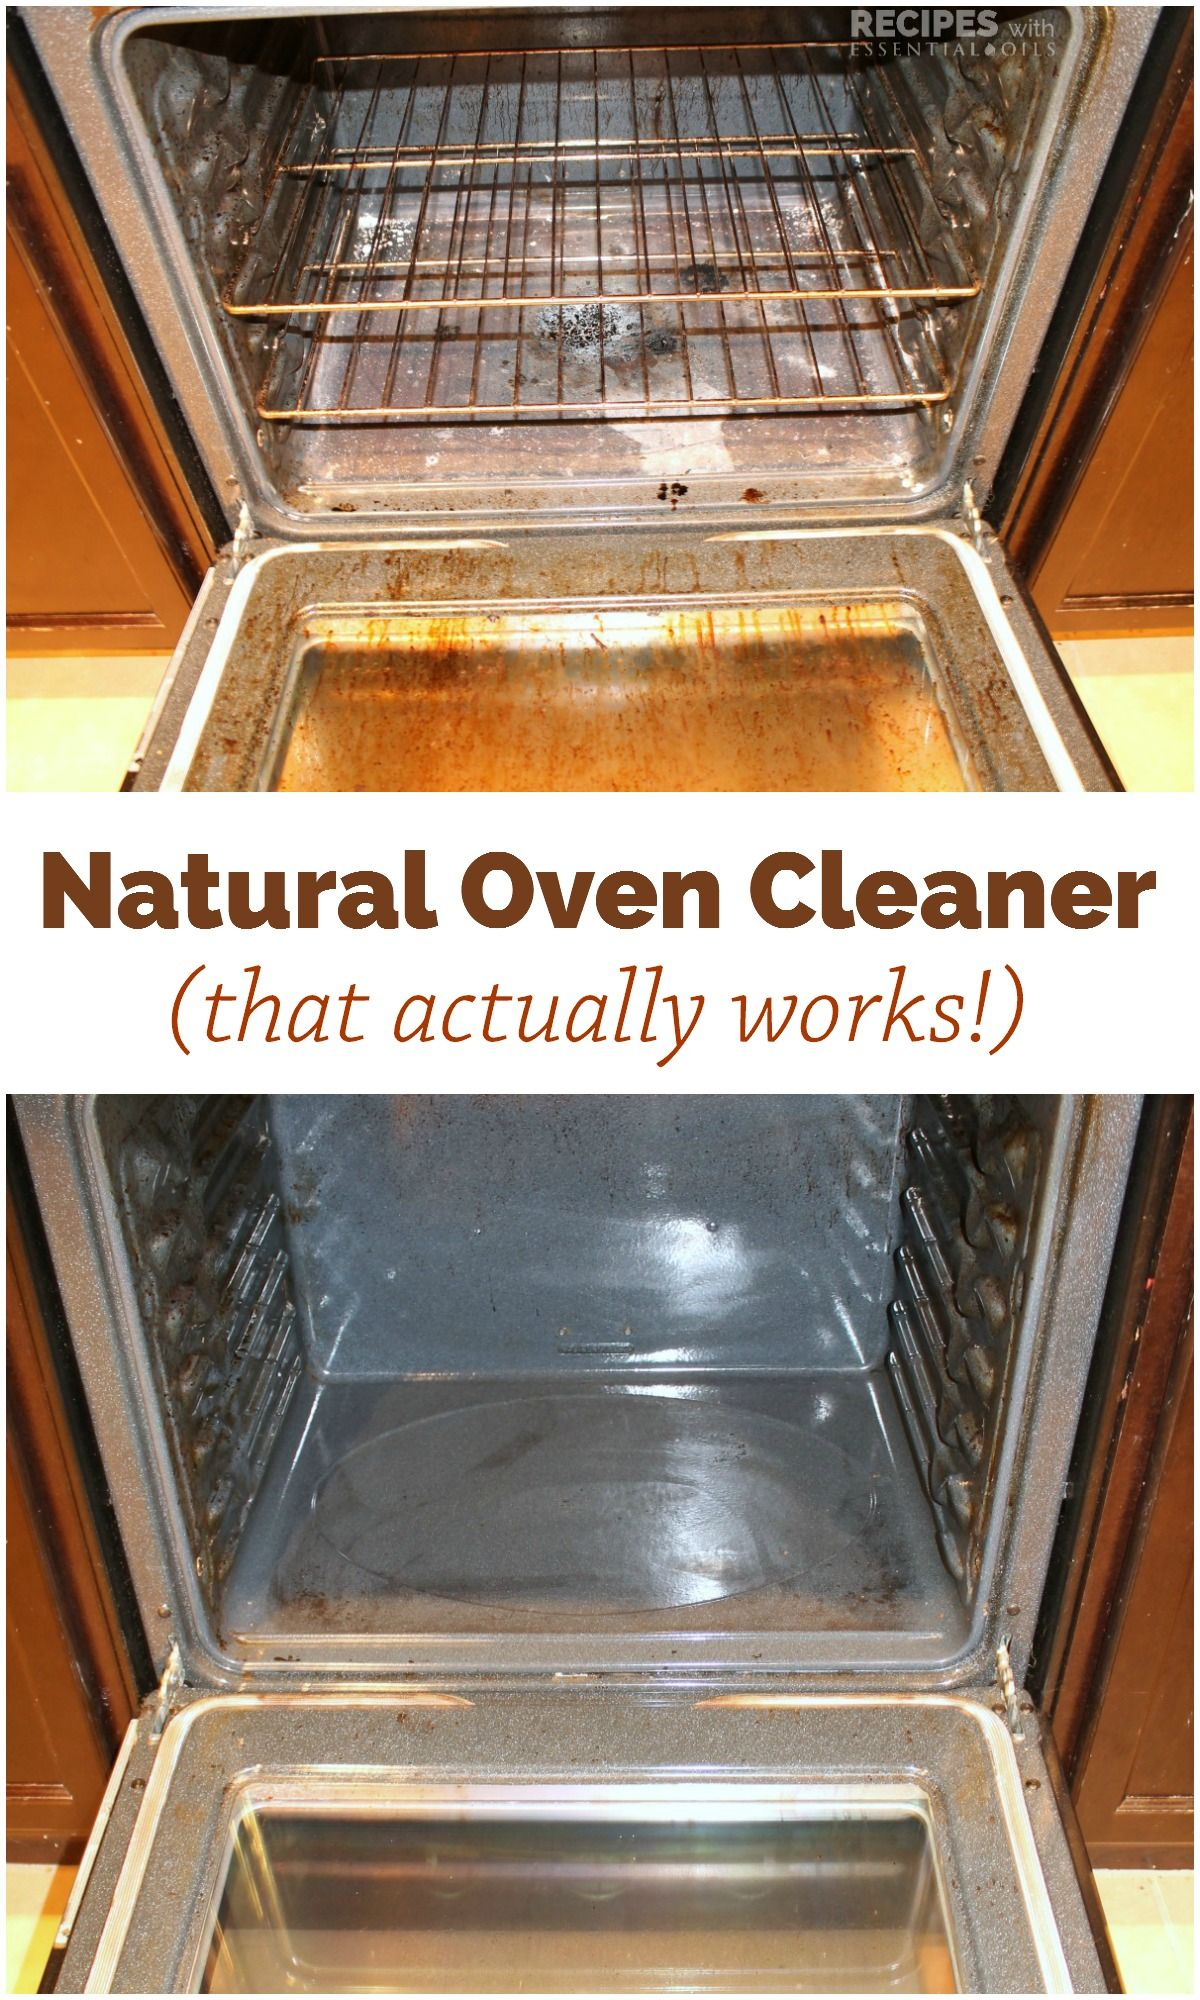 Natural Oven Cleaner Recipe Oven cleaner, Natural oven